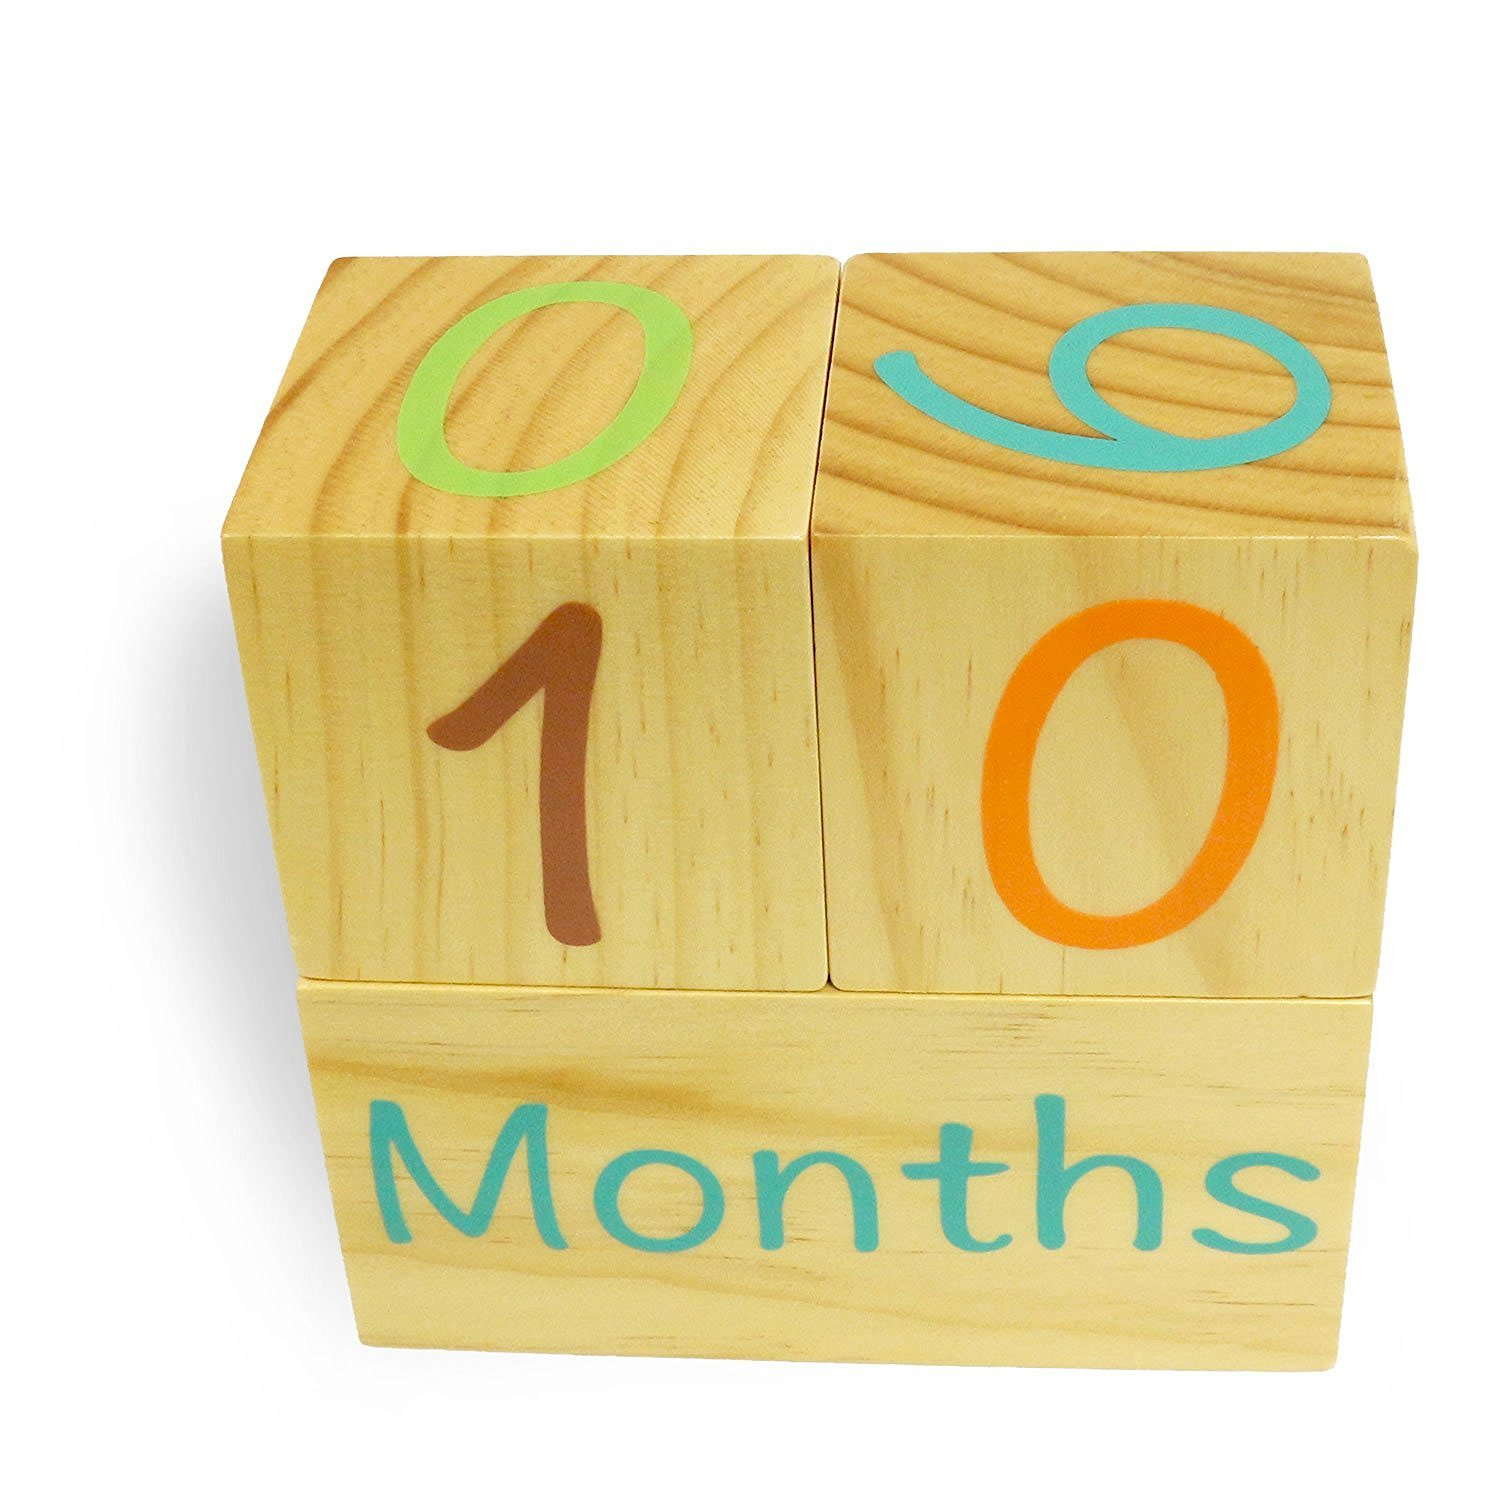 Emmzoe Wooden Photo Blocks Baby Growth Development Wood Portrait Prop (Days, Weeks, Months, Years) by Emmzoe